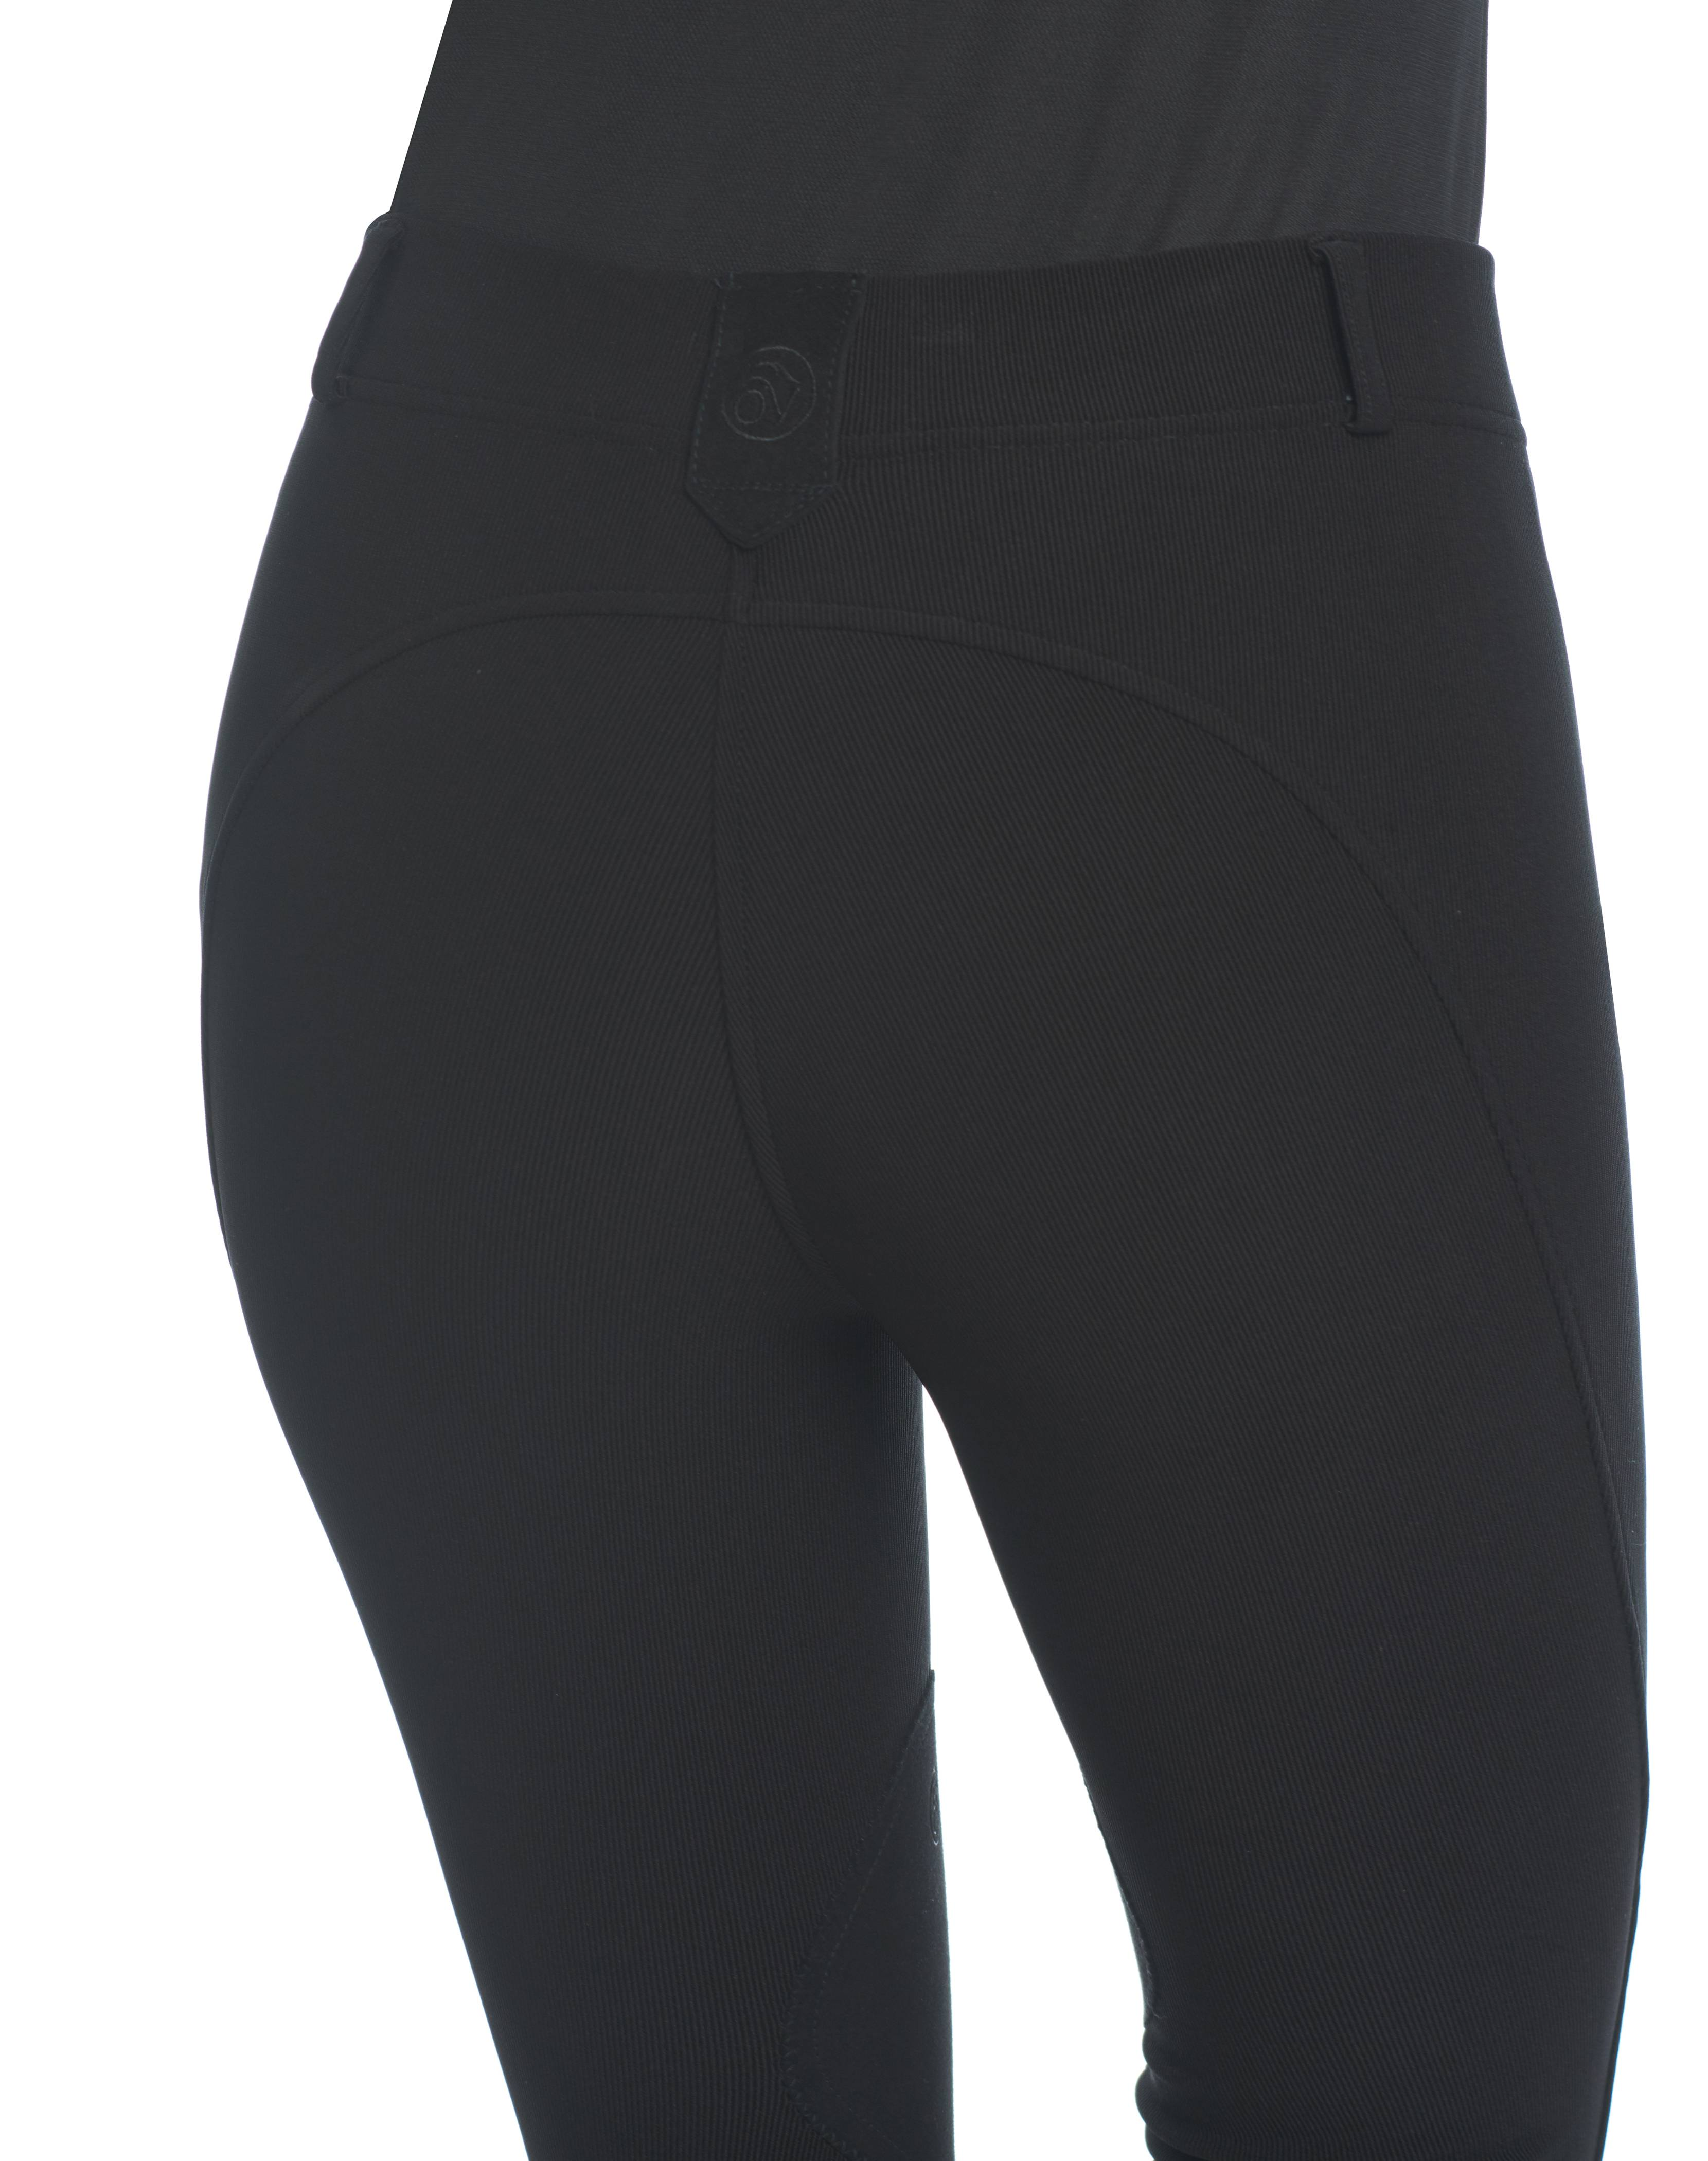 Ovation Ladies Athletica Full Seat Rider Tights